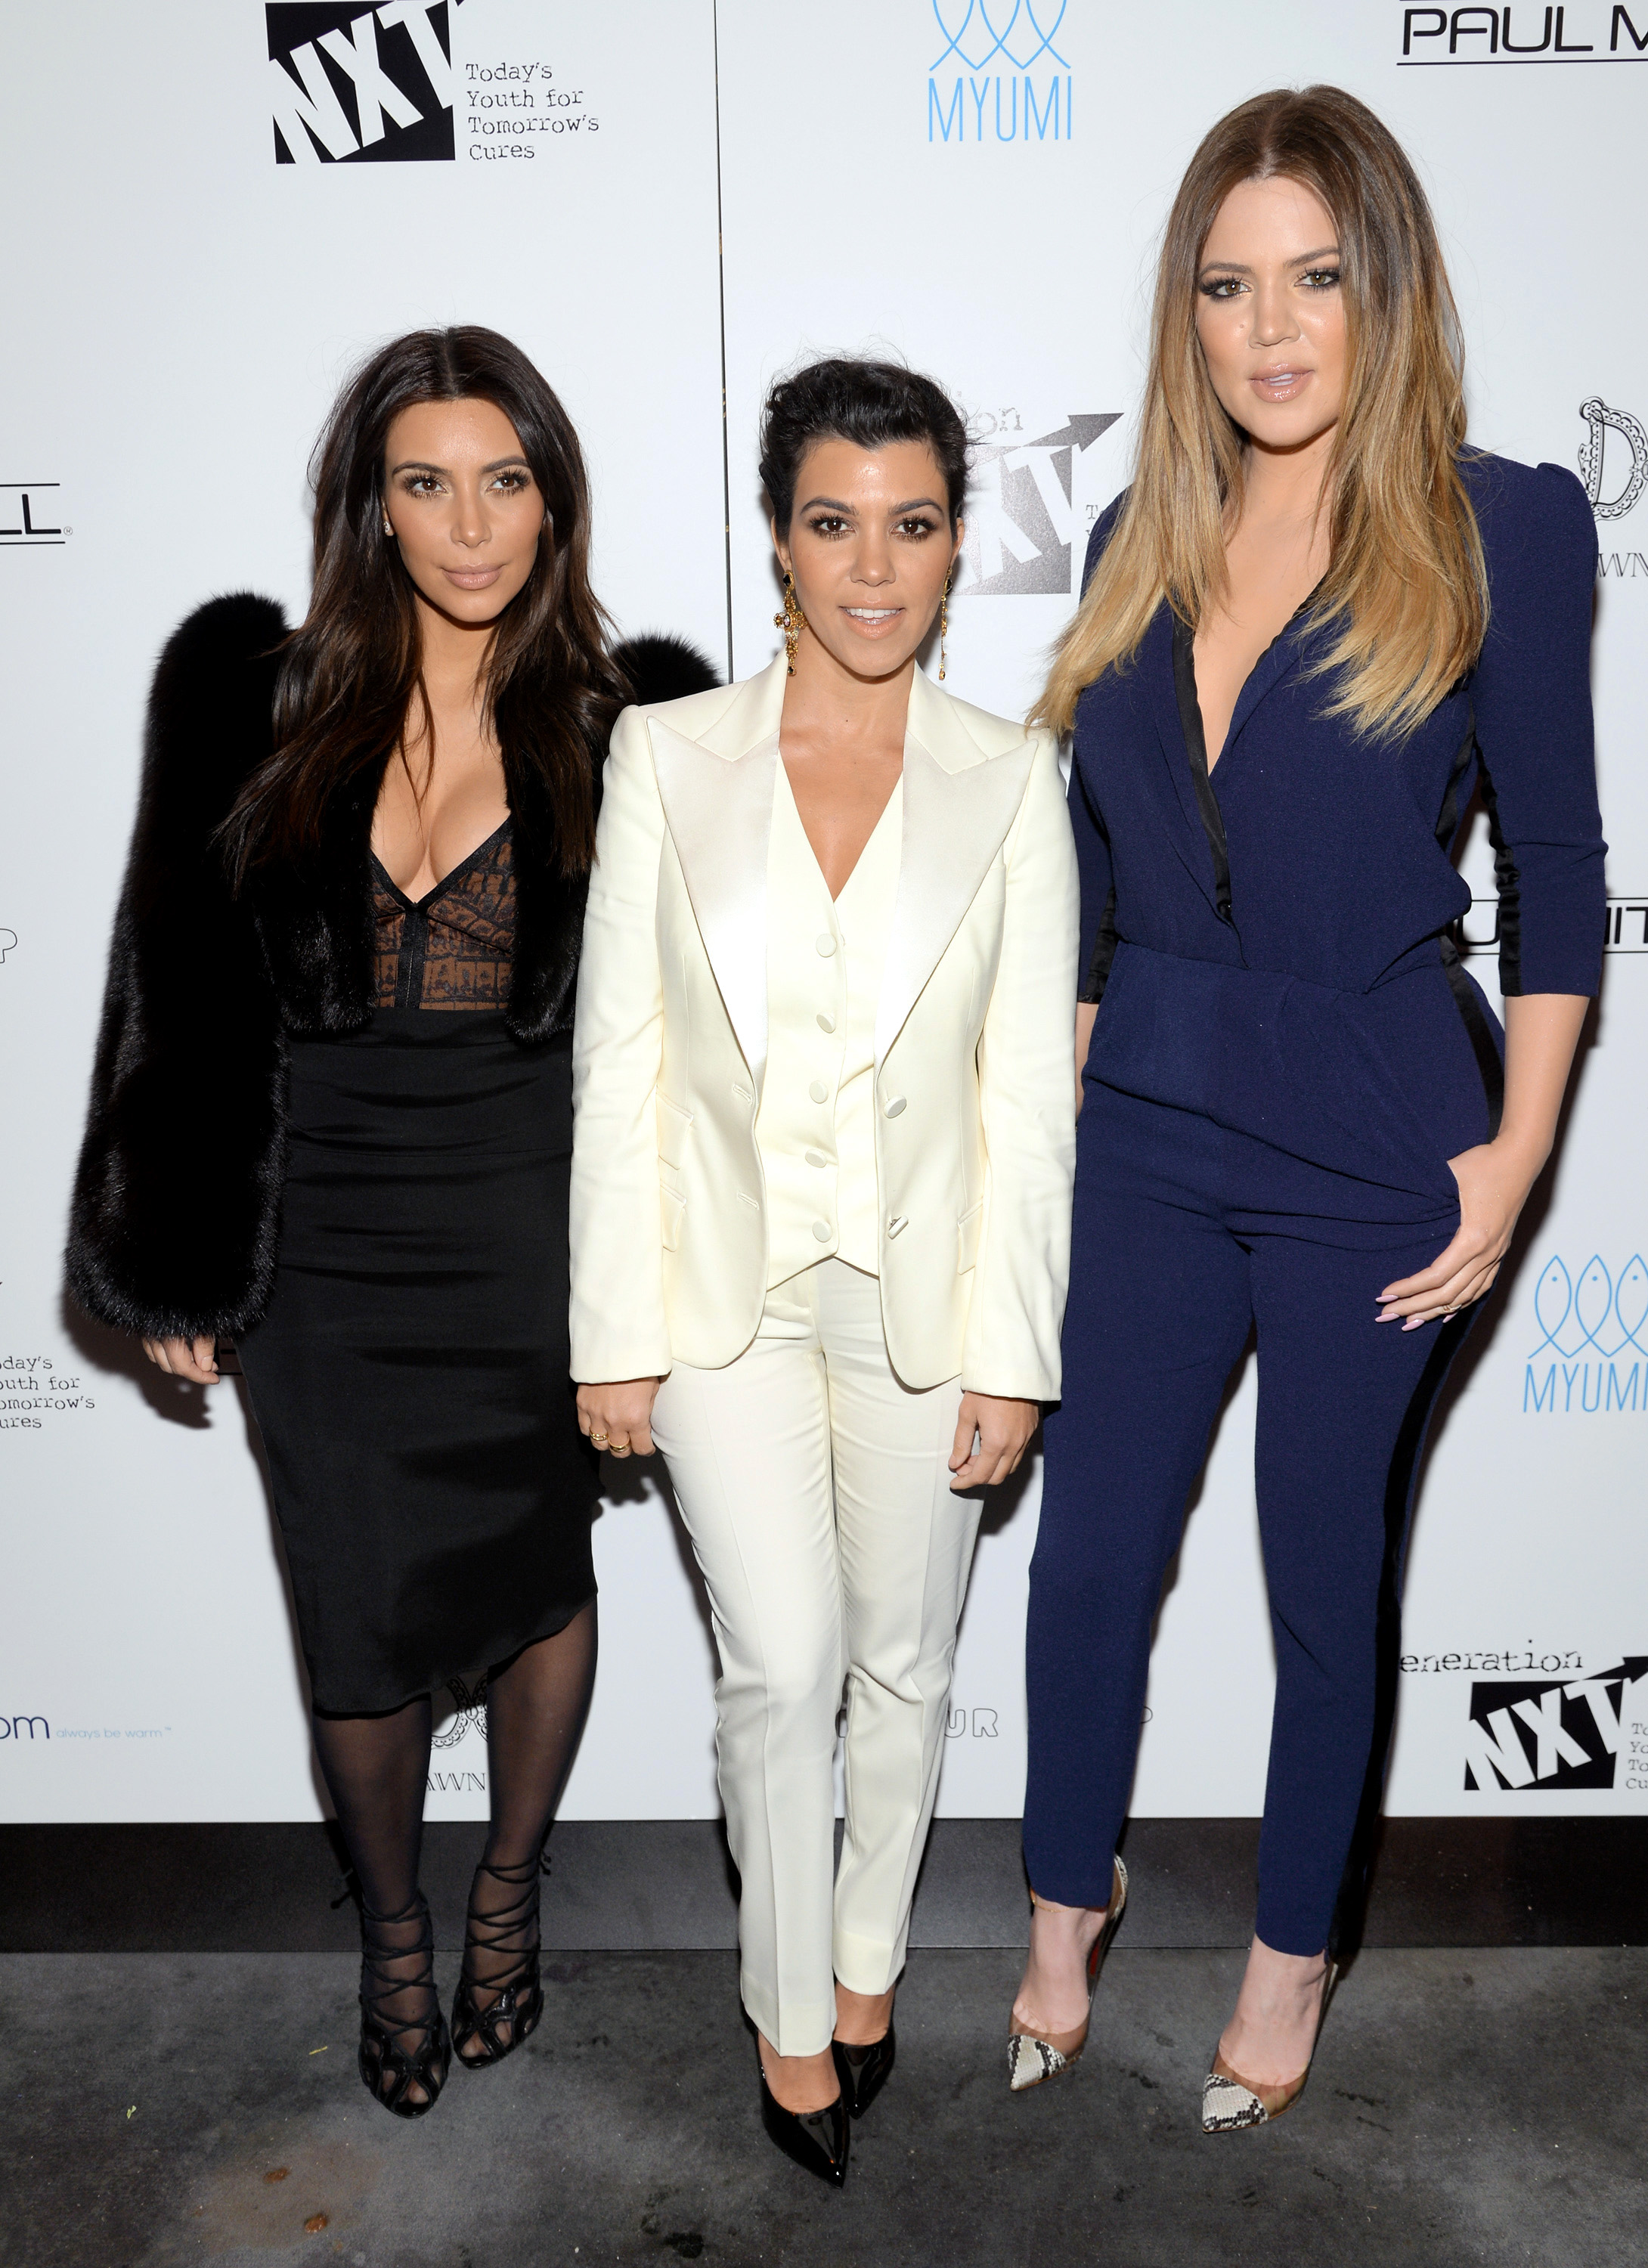 Television personalities Kim Kardashian, left, Kourtney Kardashian and Khloe Kardashian Odom, right, attend a Generation NXT Dream Foundation benefit event in New York on Feb. 16, 2014.